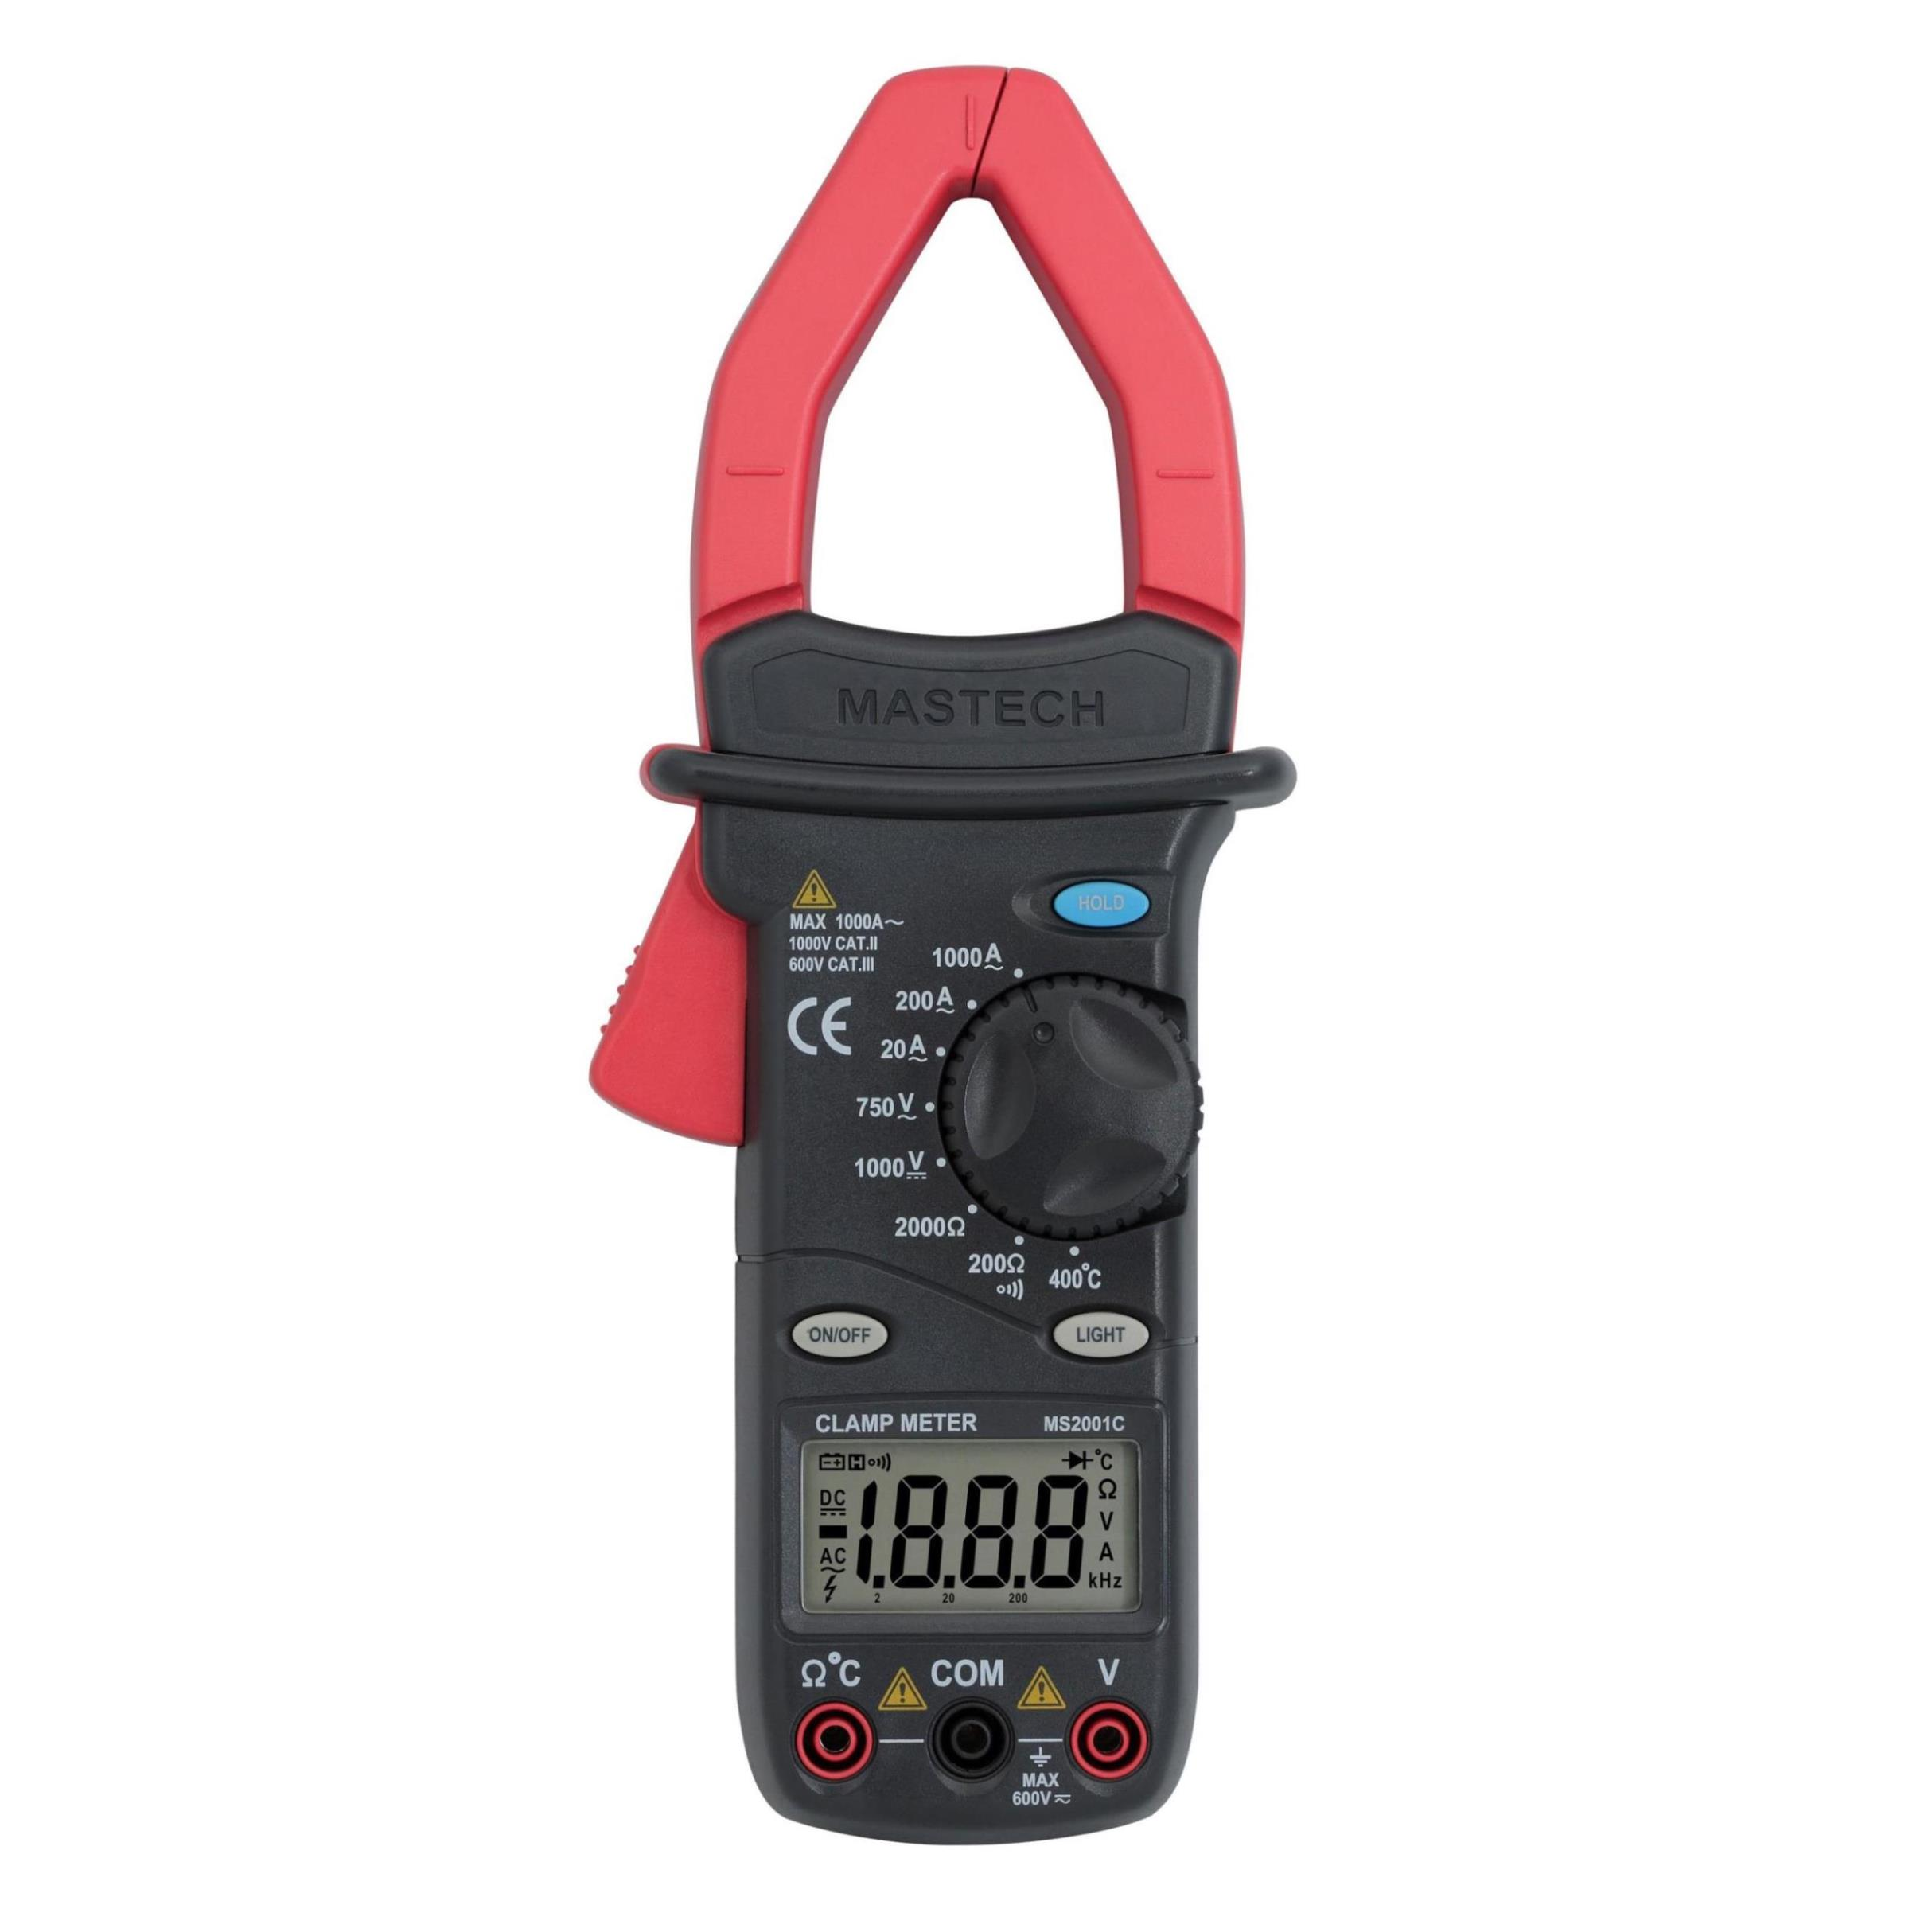 MASTECH MS2001C Digital Clamp Meter AC/DC Voltage Tester Detector with Diode and Backlit(China (Mainland))